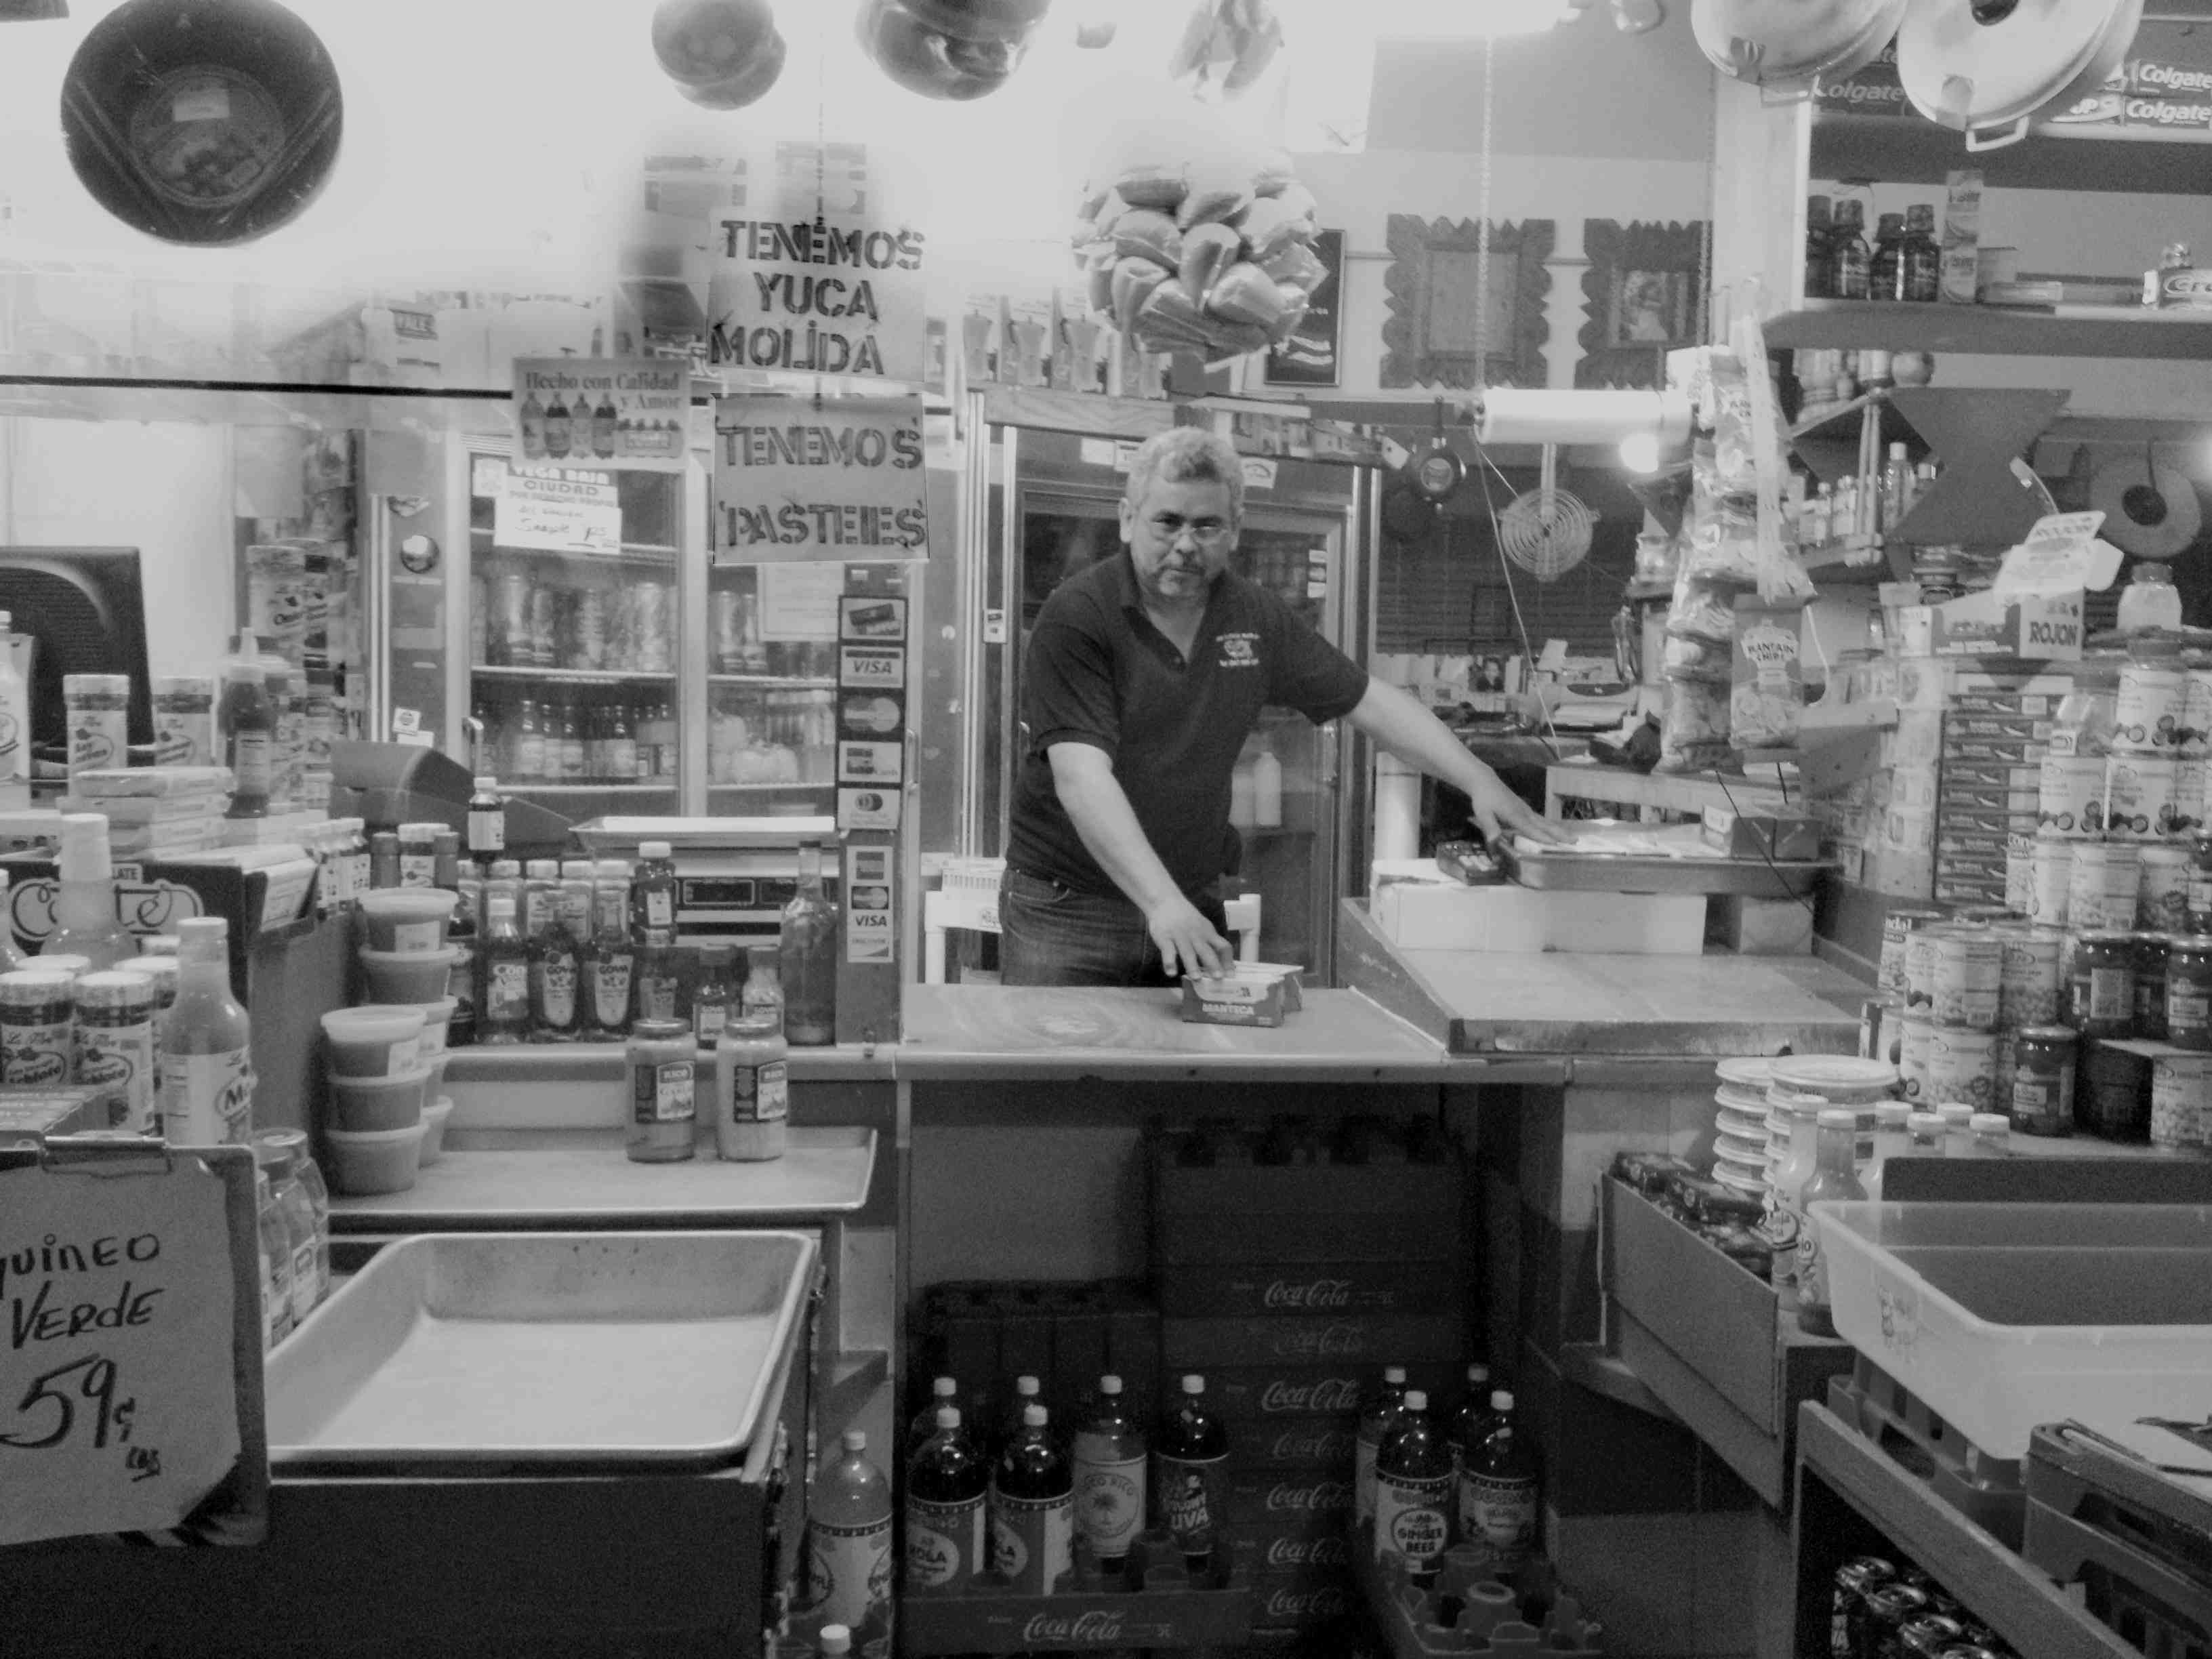 Photograph of La Marketa (Moore Street Market), Brooklyn, NY. CC BY-NC Amanda Matles, 2012, Brooklyn, NY.